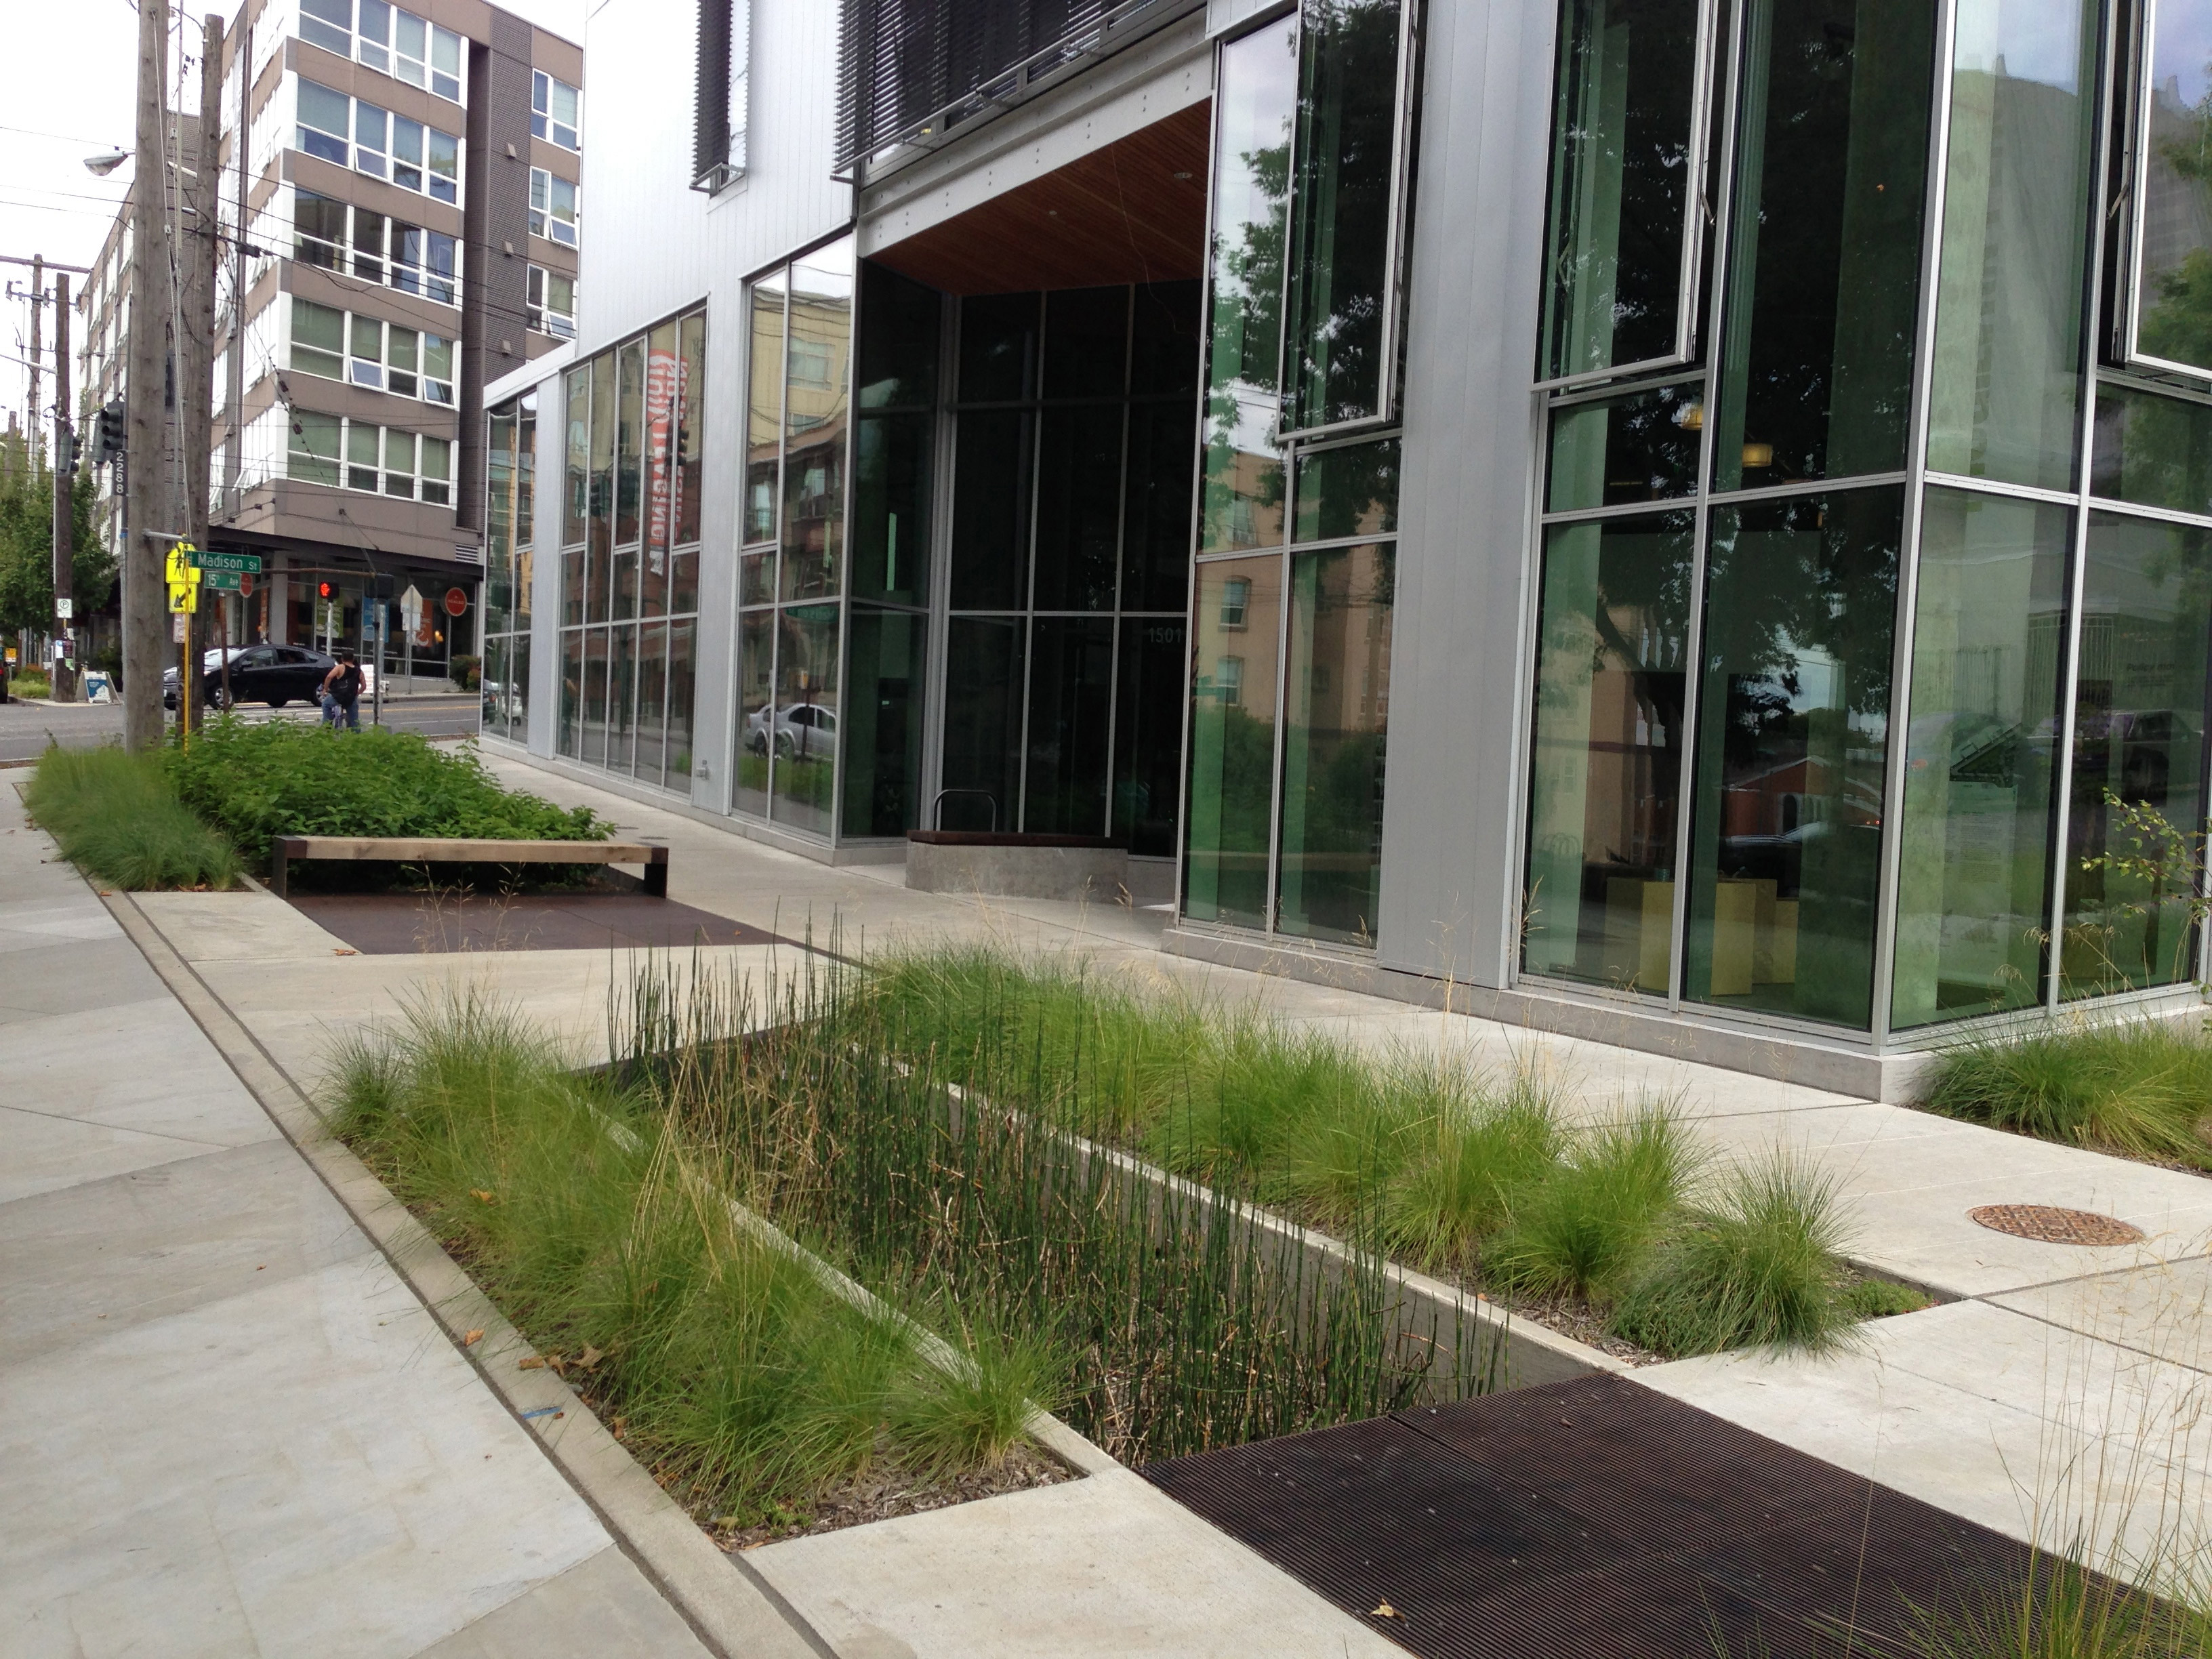 1000 images about stormwater planters on pinterest rain for Paisajismo urbano